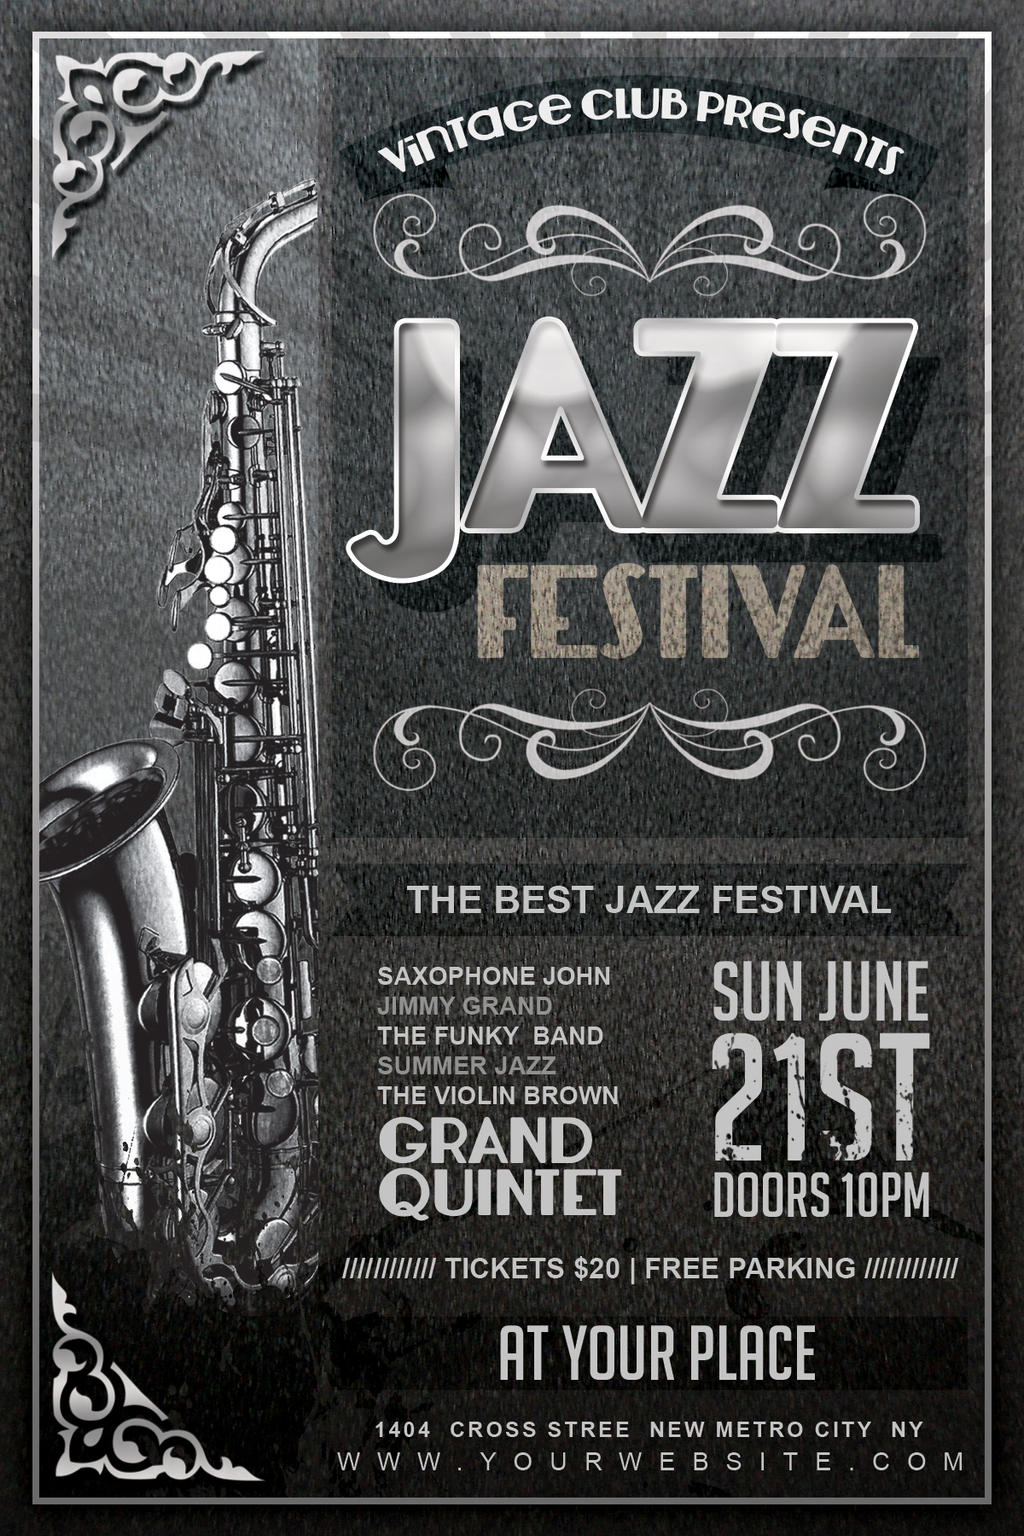 Vintage Jazz Festival Flyer by Dilanr on DeviantArt